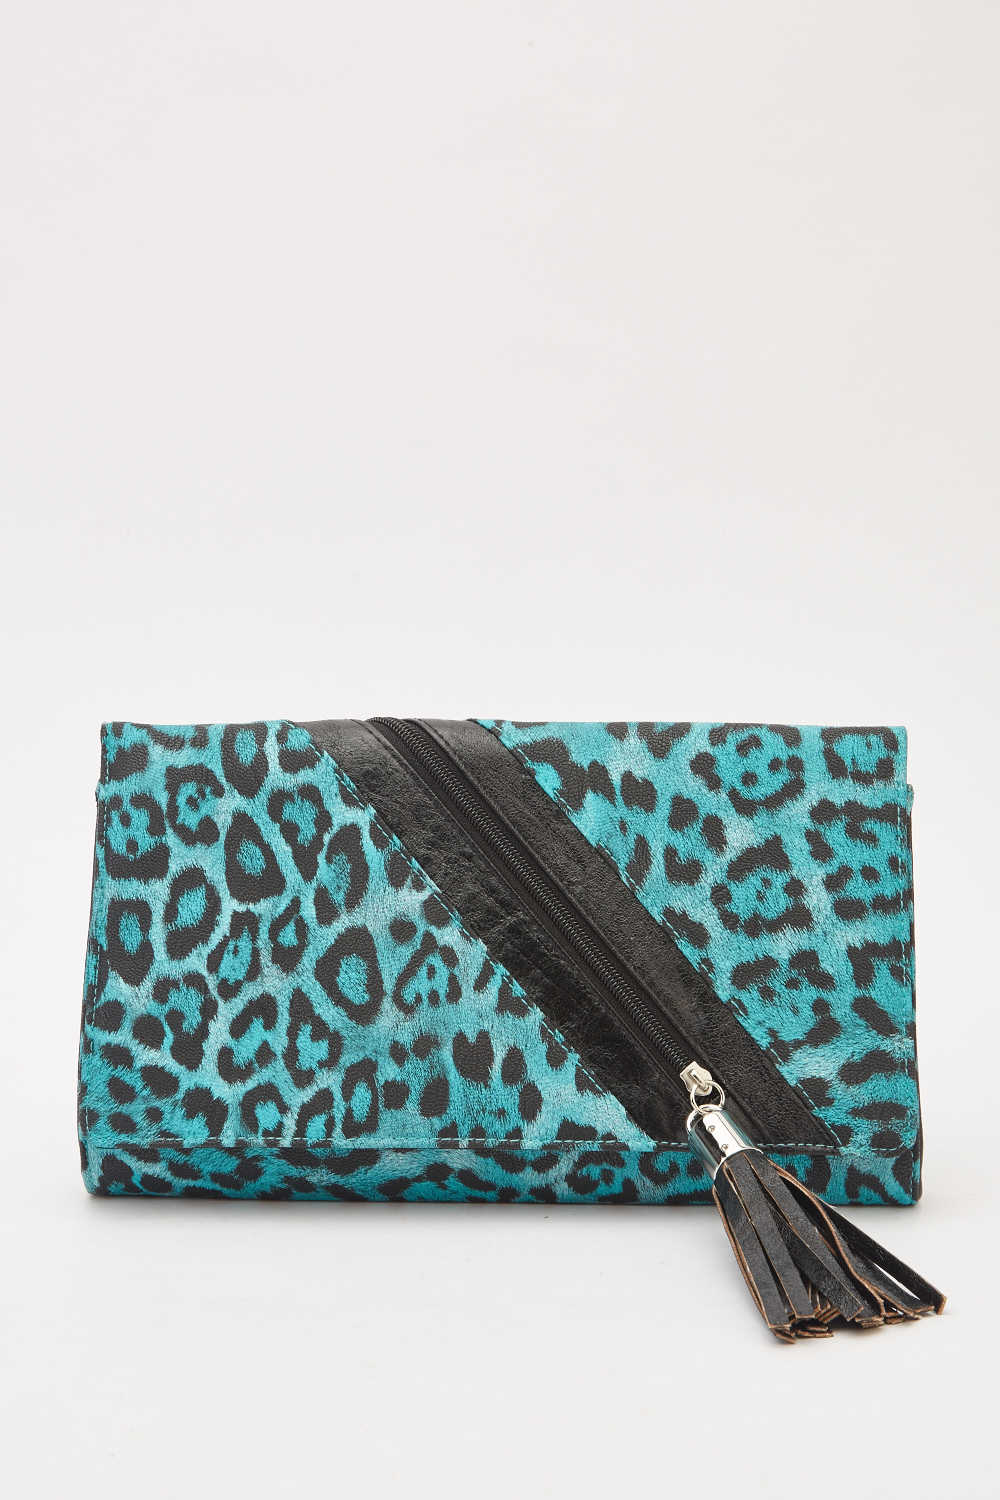 84db696d8131 Faux Leather Animal Print Clutch Bag - Just £5